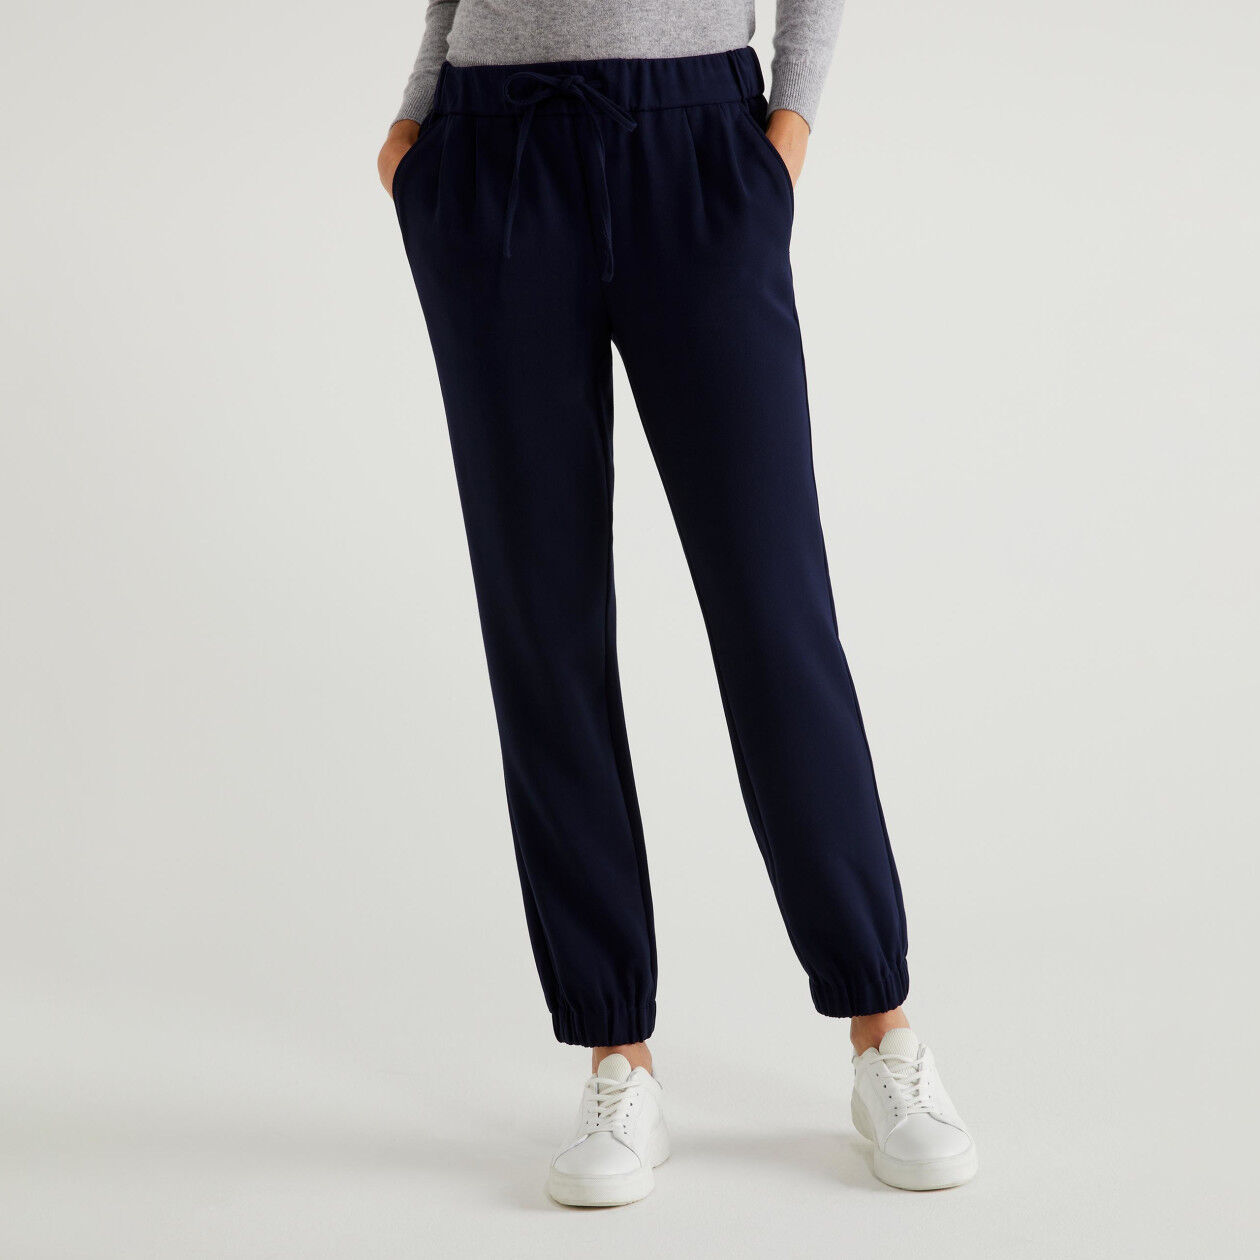 Pants with elastic at the bottom